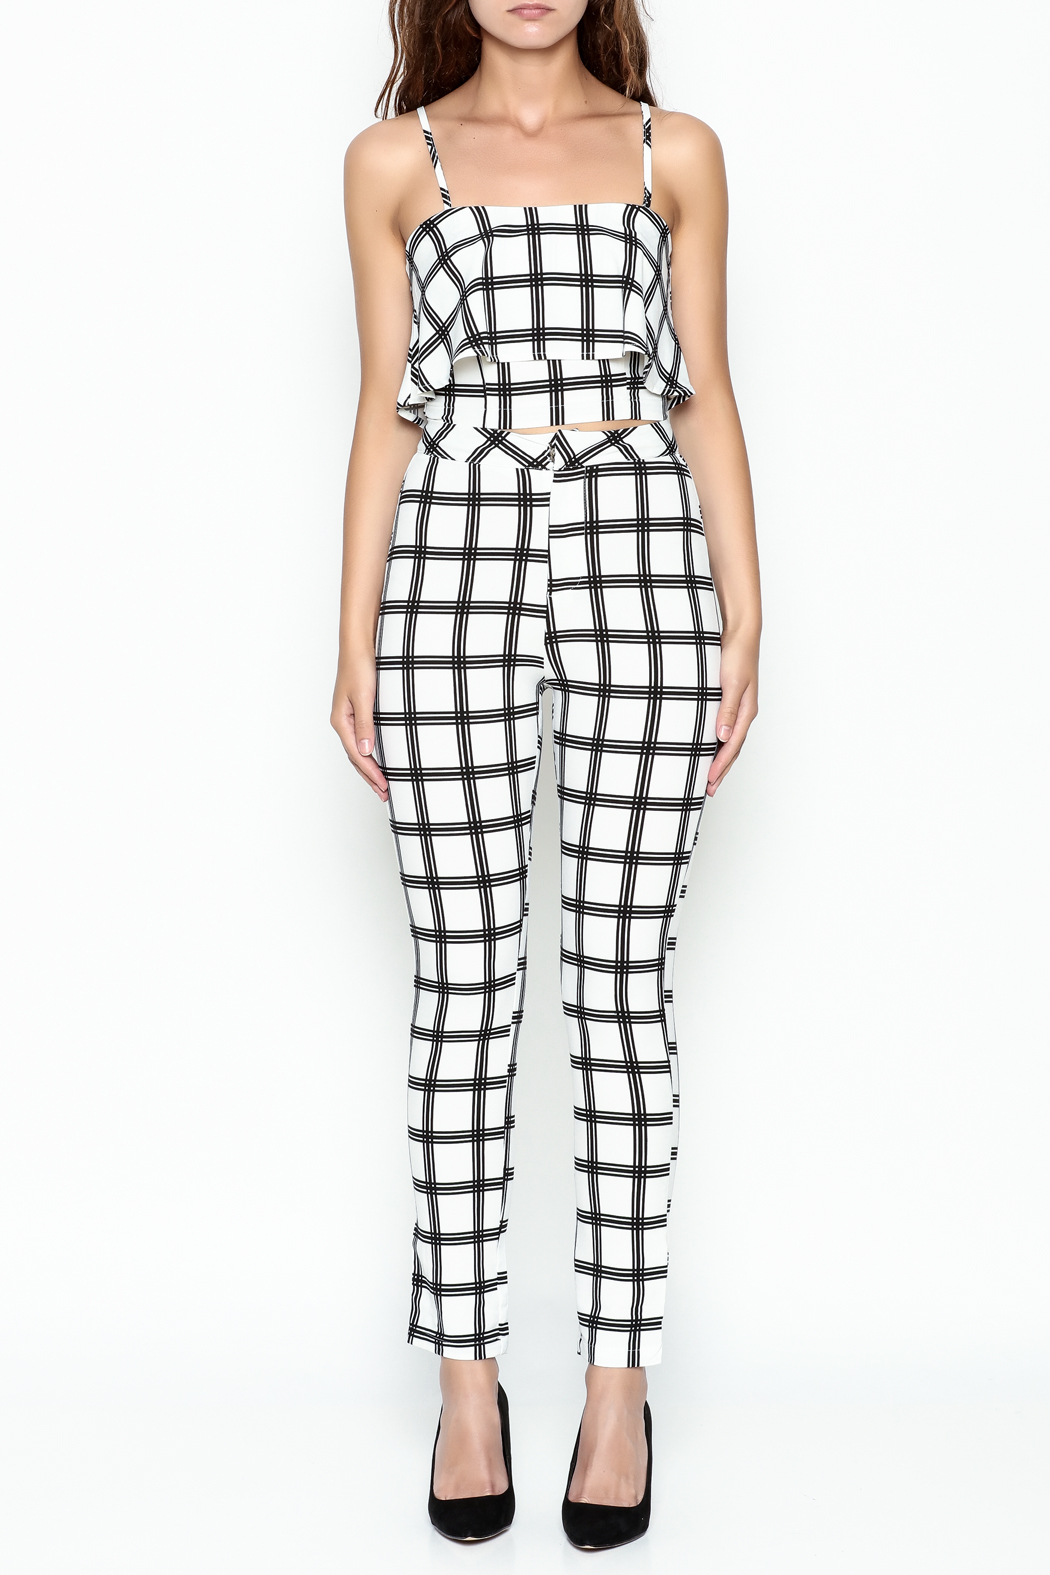 luxxel Gridlines Pant Set - Front Full Image